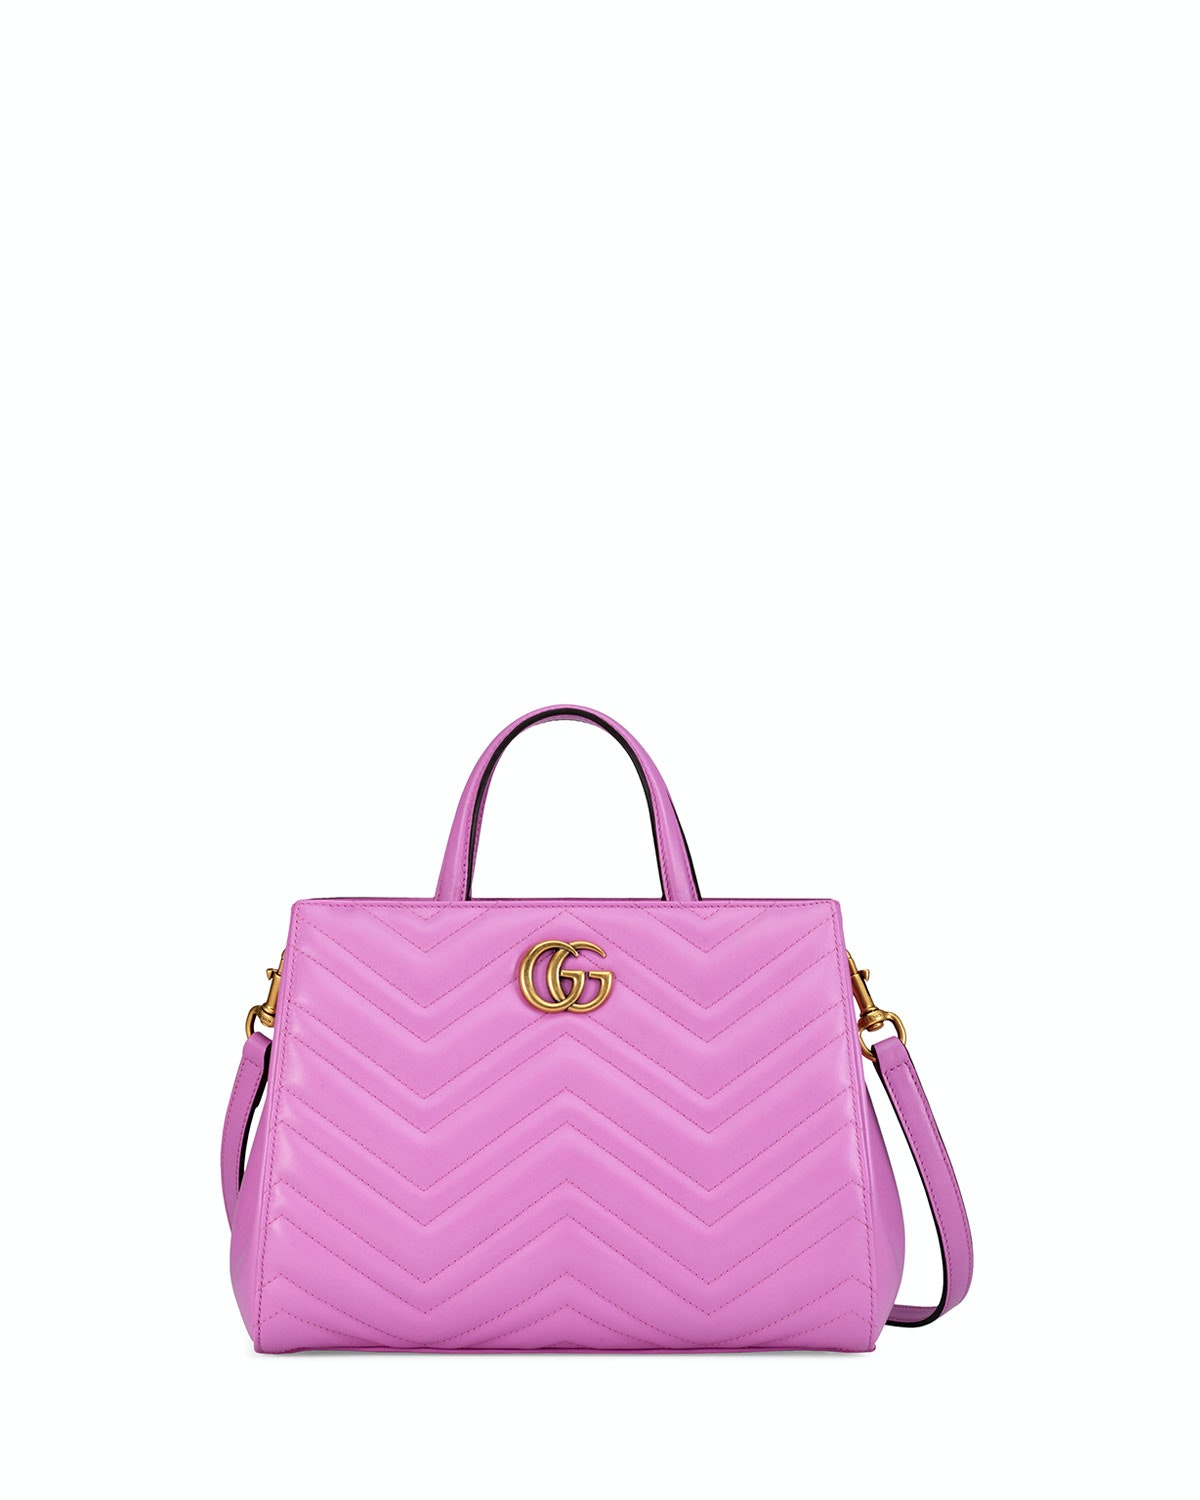 Gucci Marmont Top Handle Matelasse Small Bright Pink